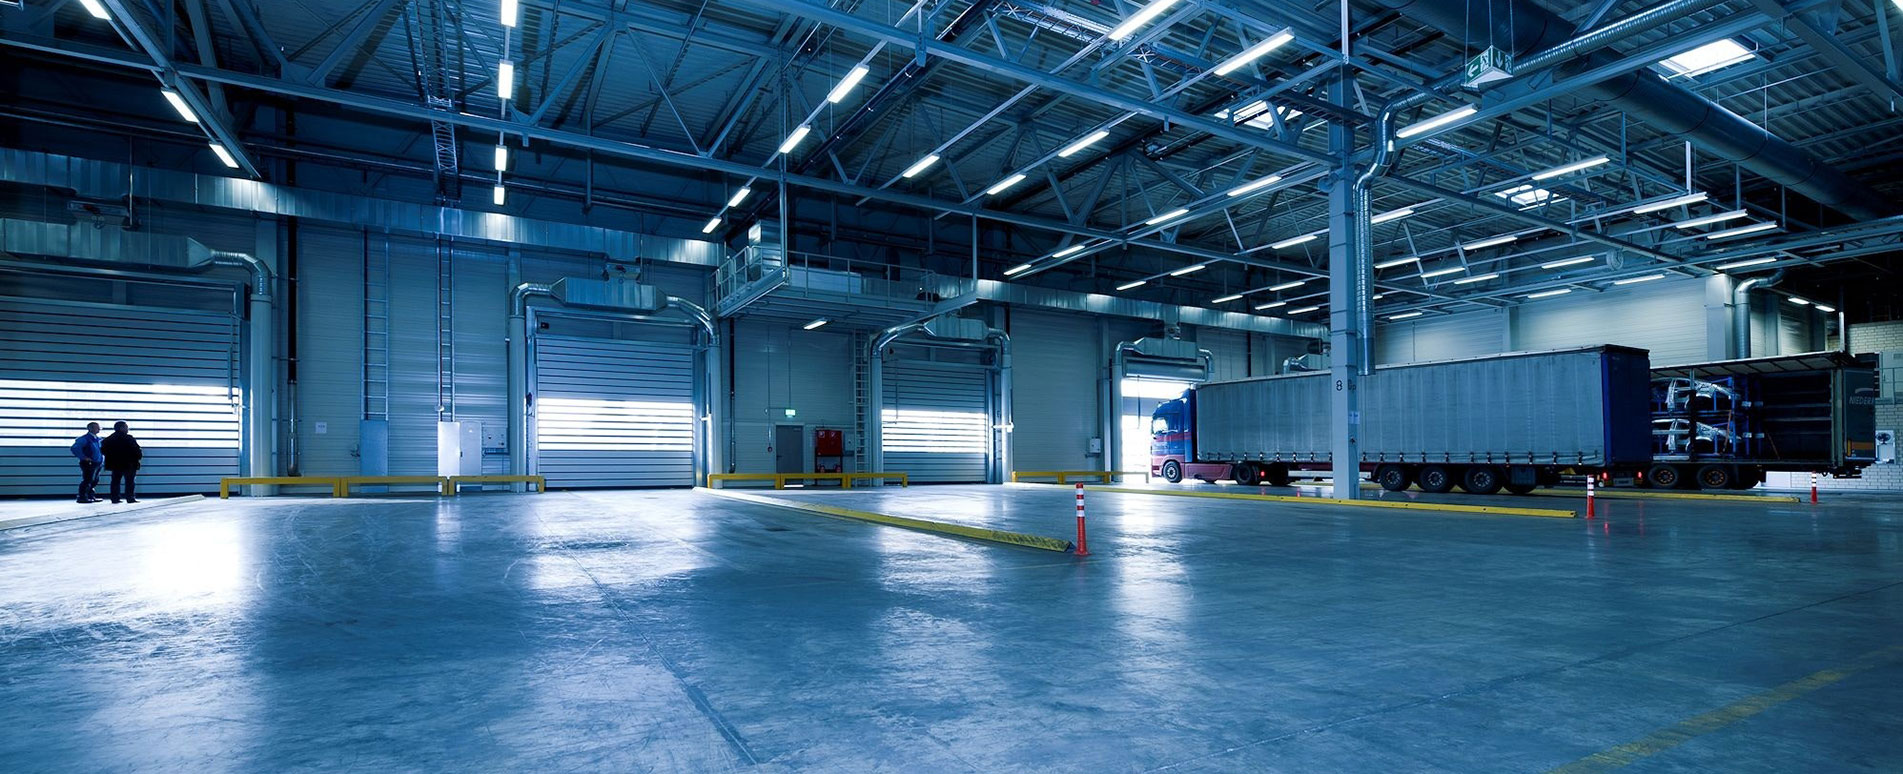 Texas Commercial Property coverage